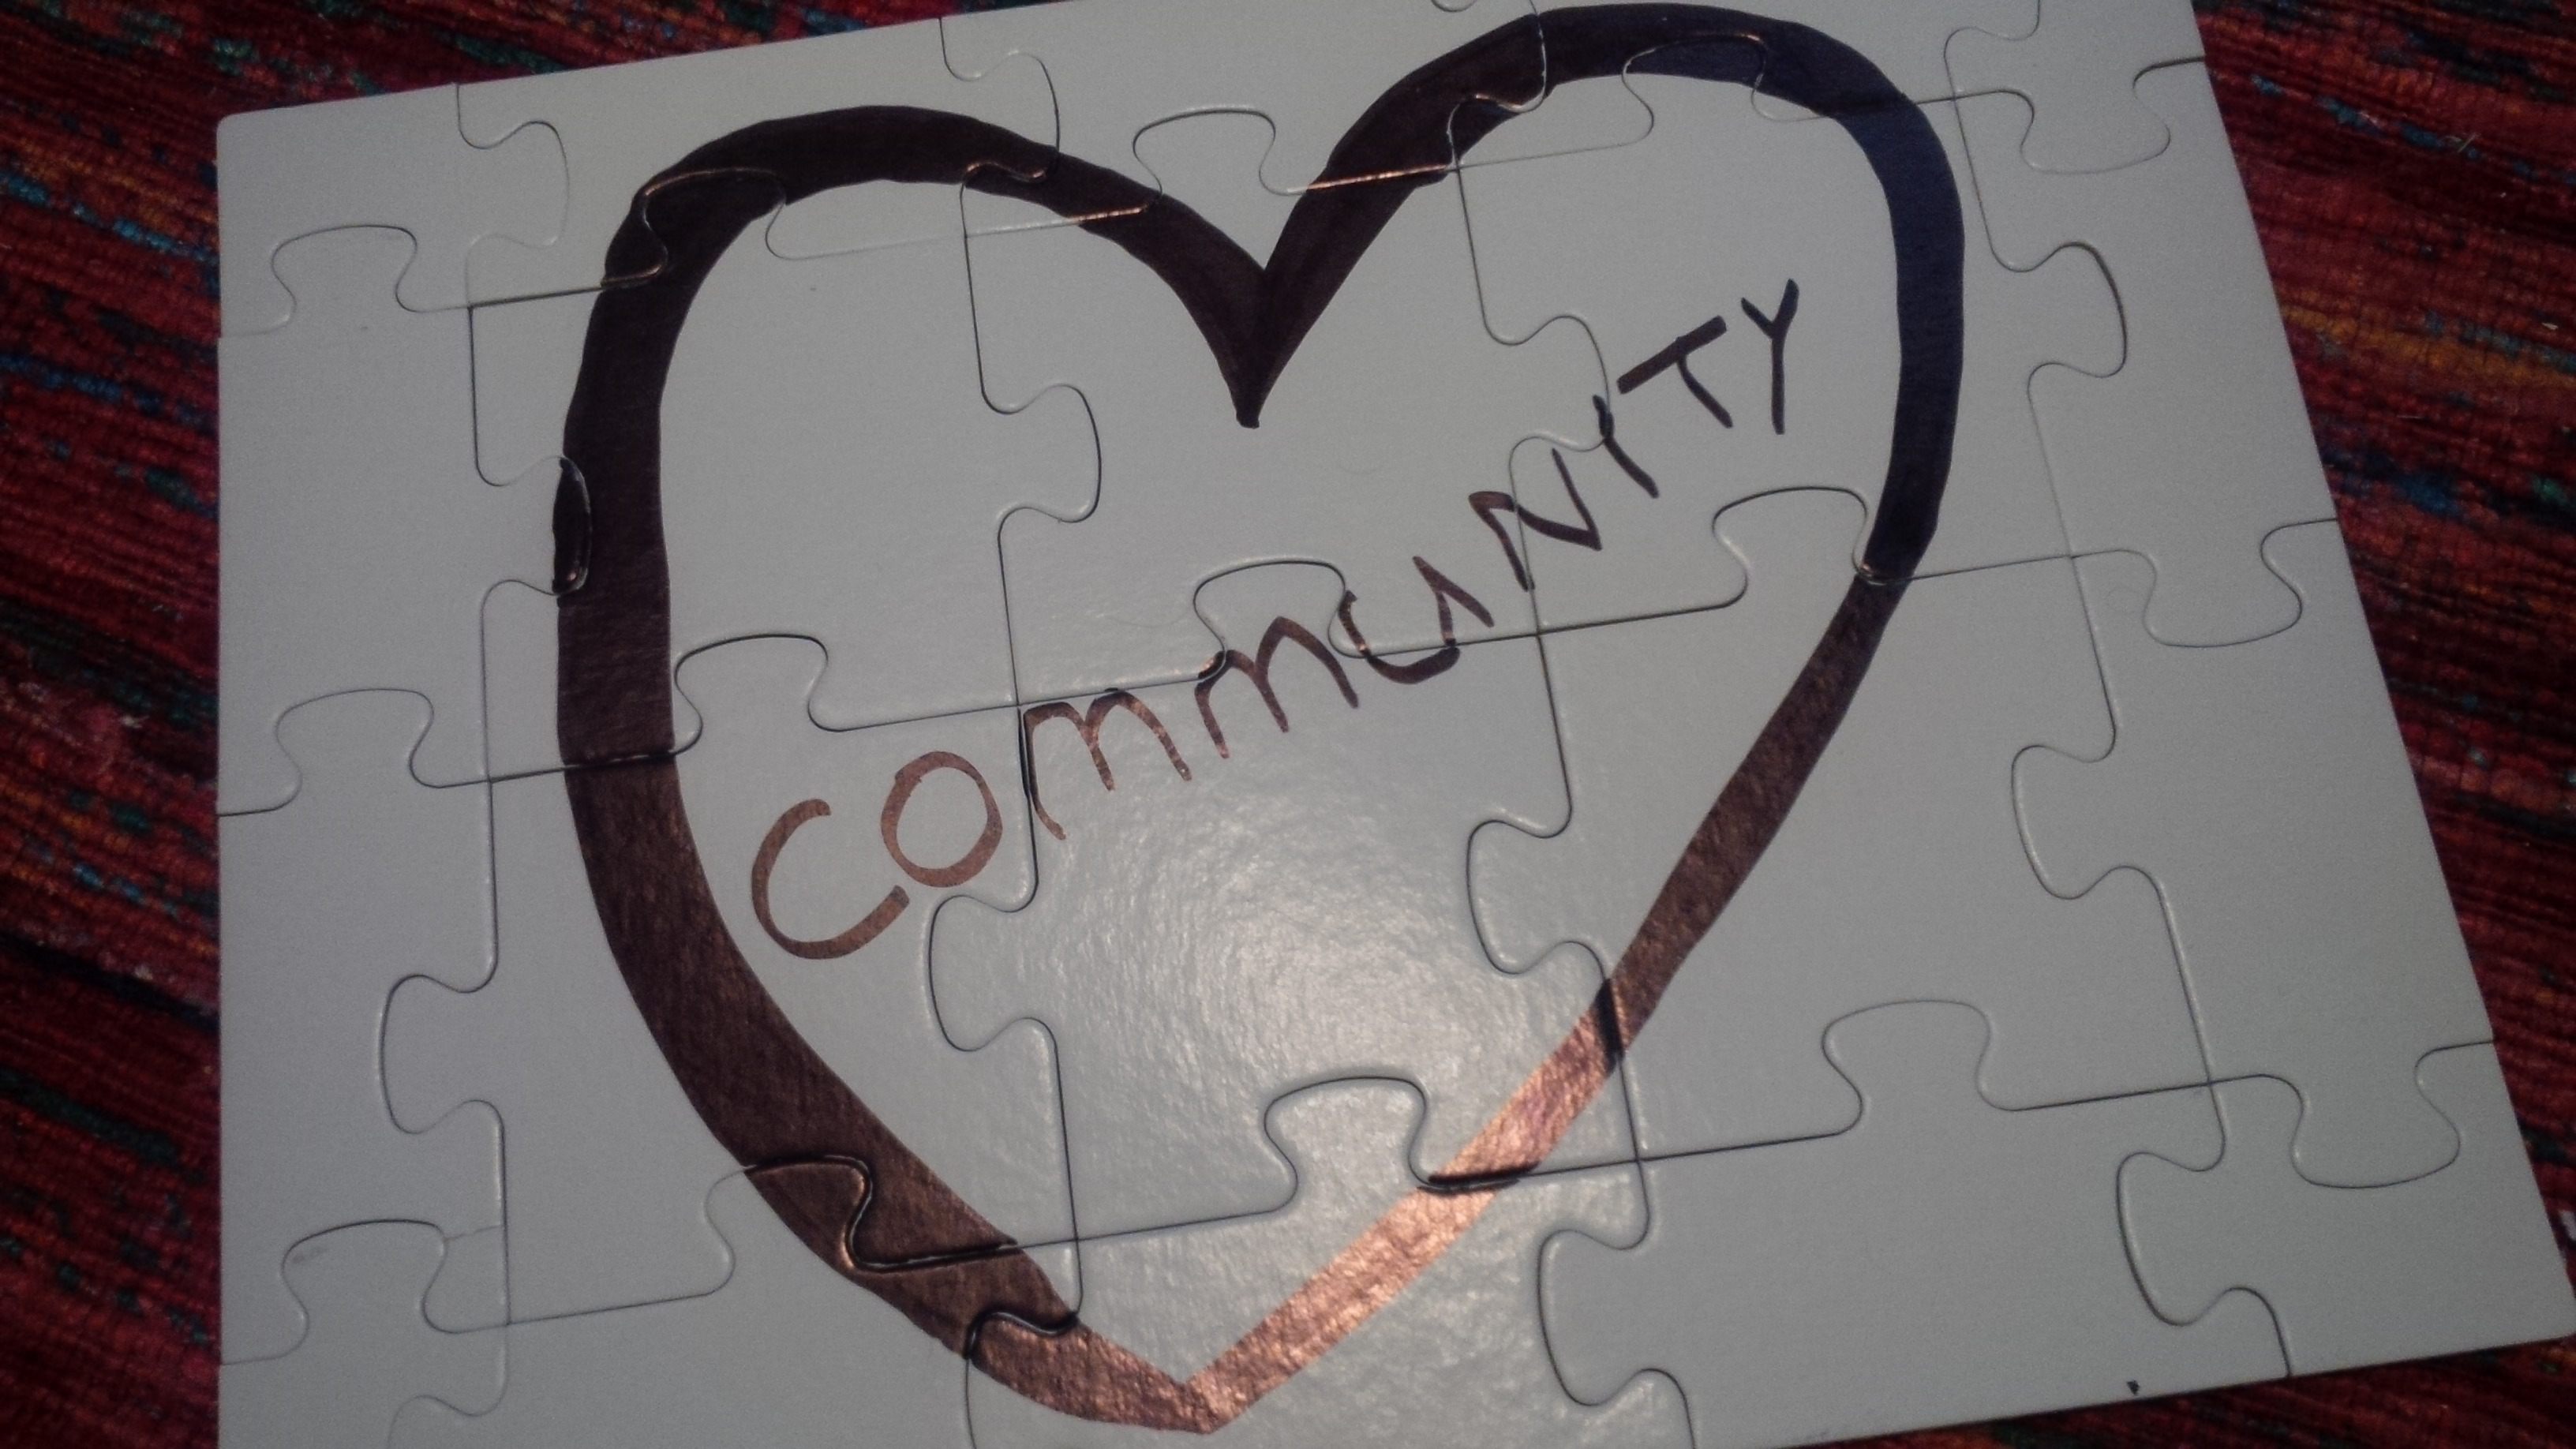 Community_Images_Puzzle